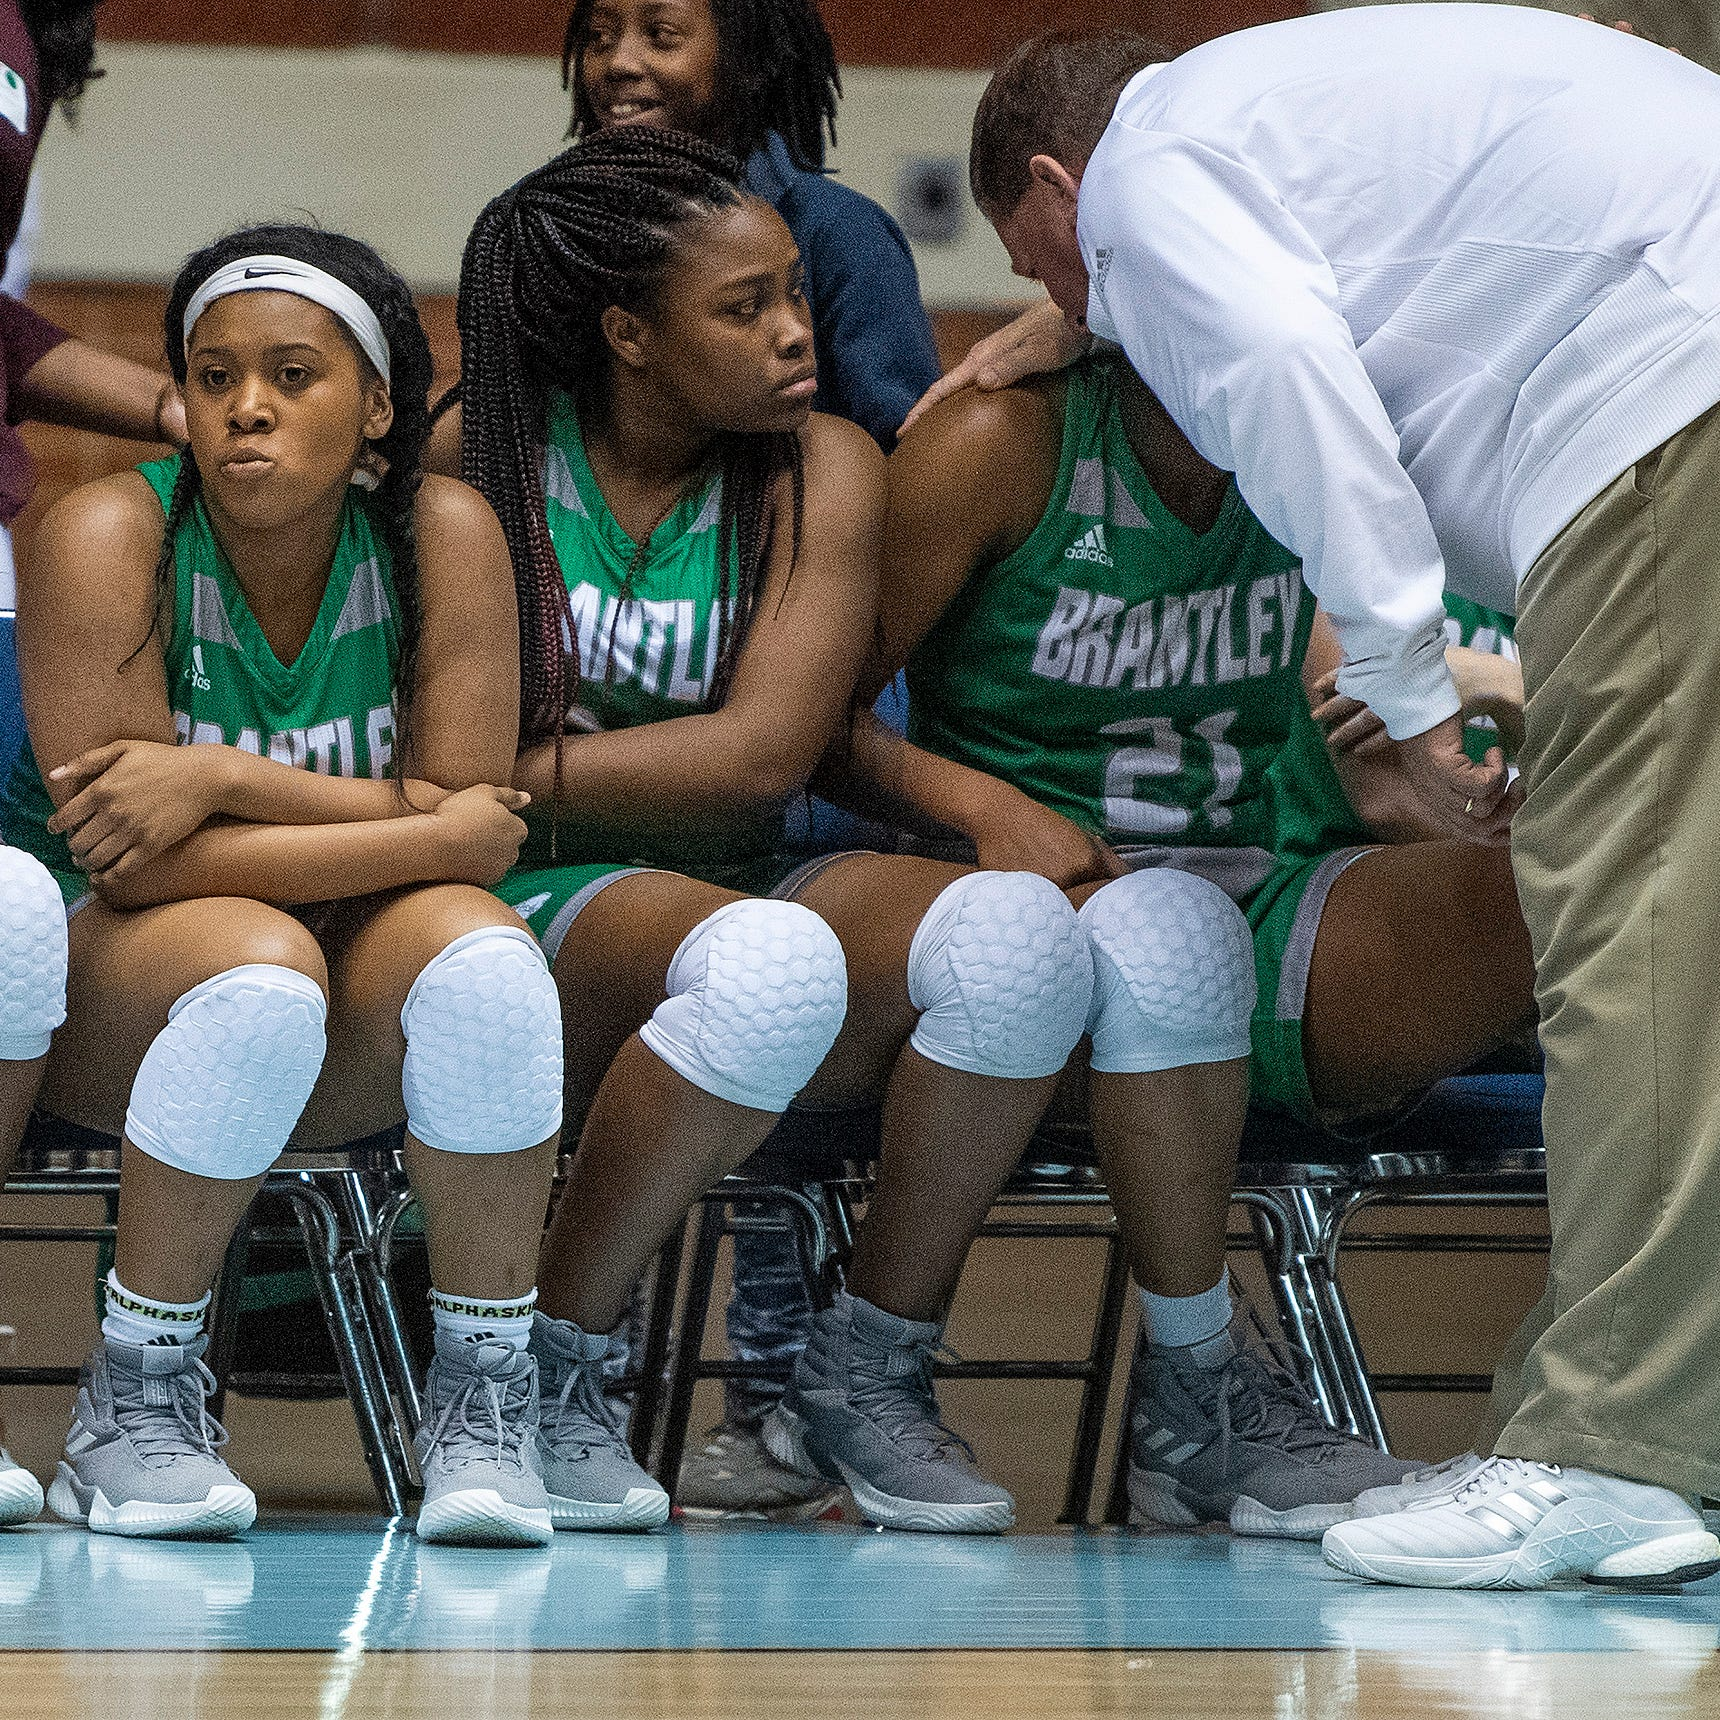 Brantley coach's tears flow over end of season